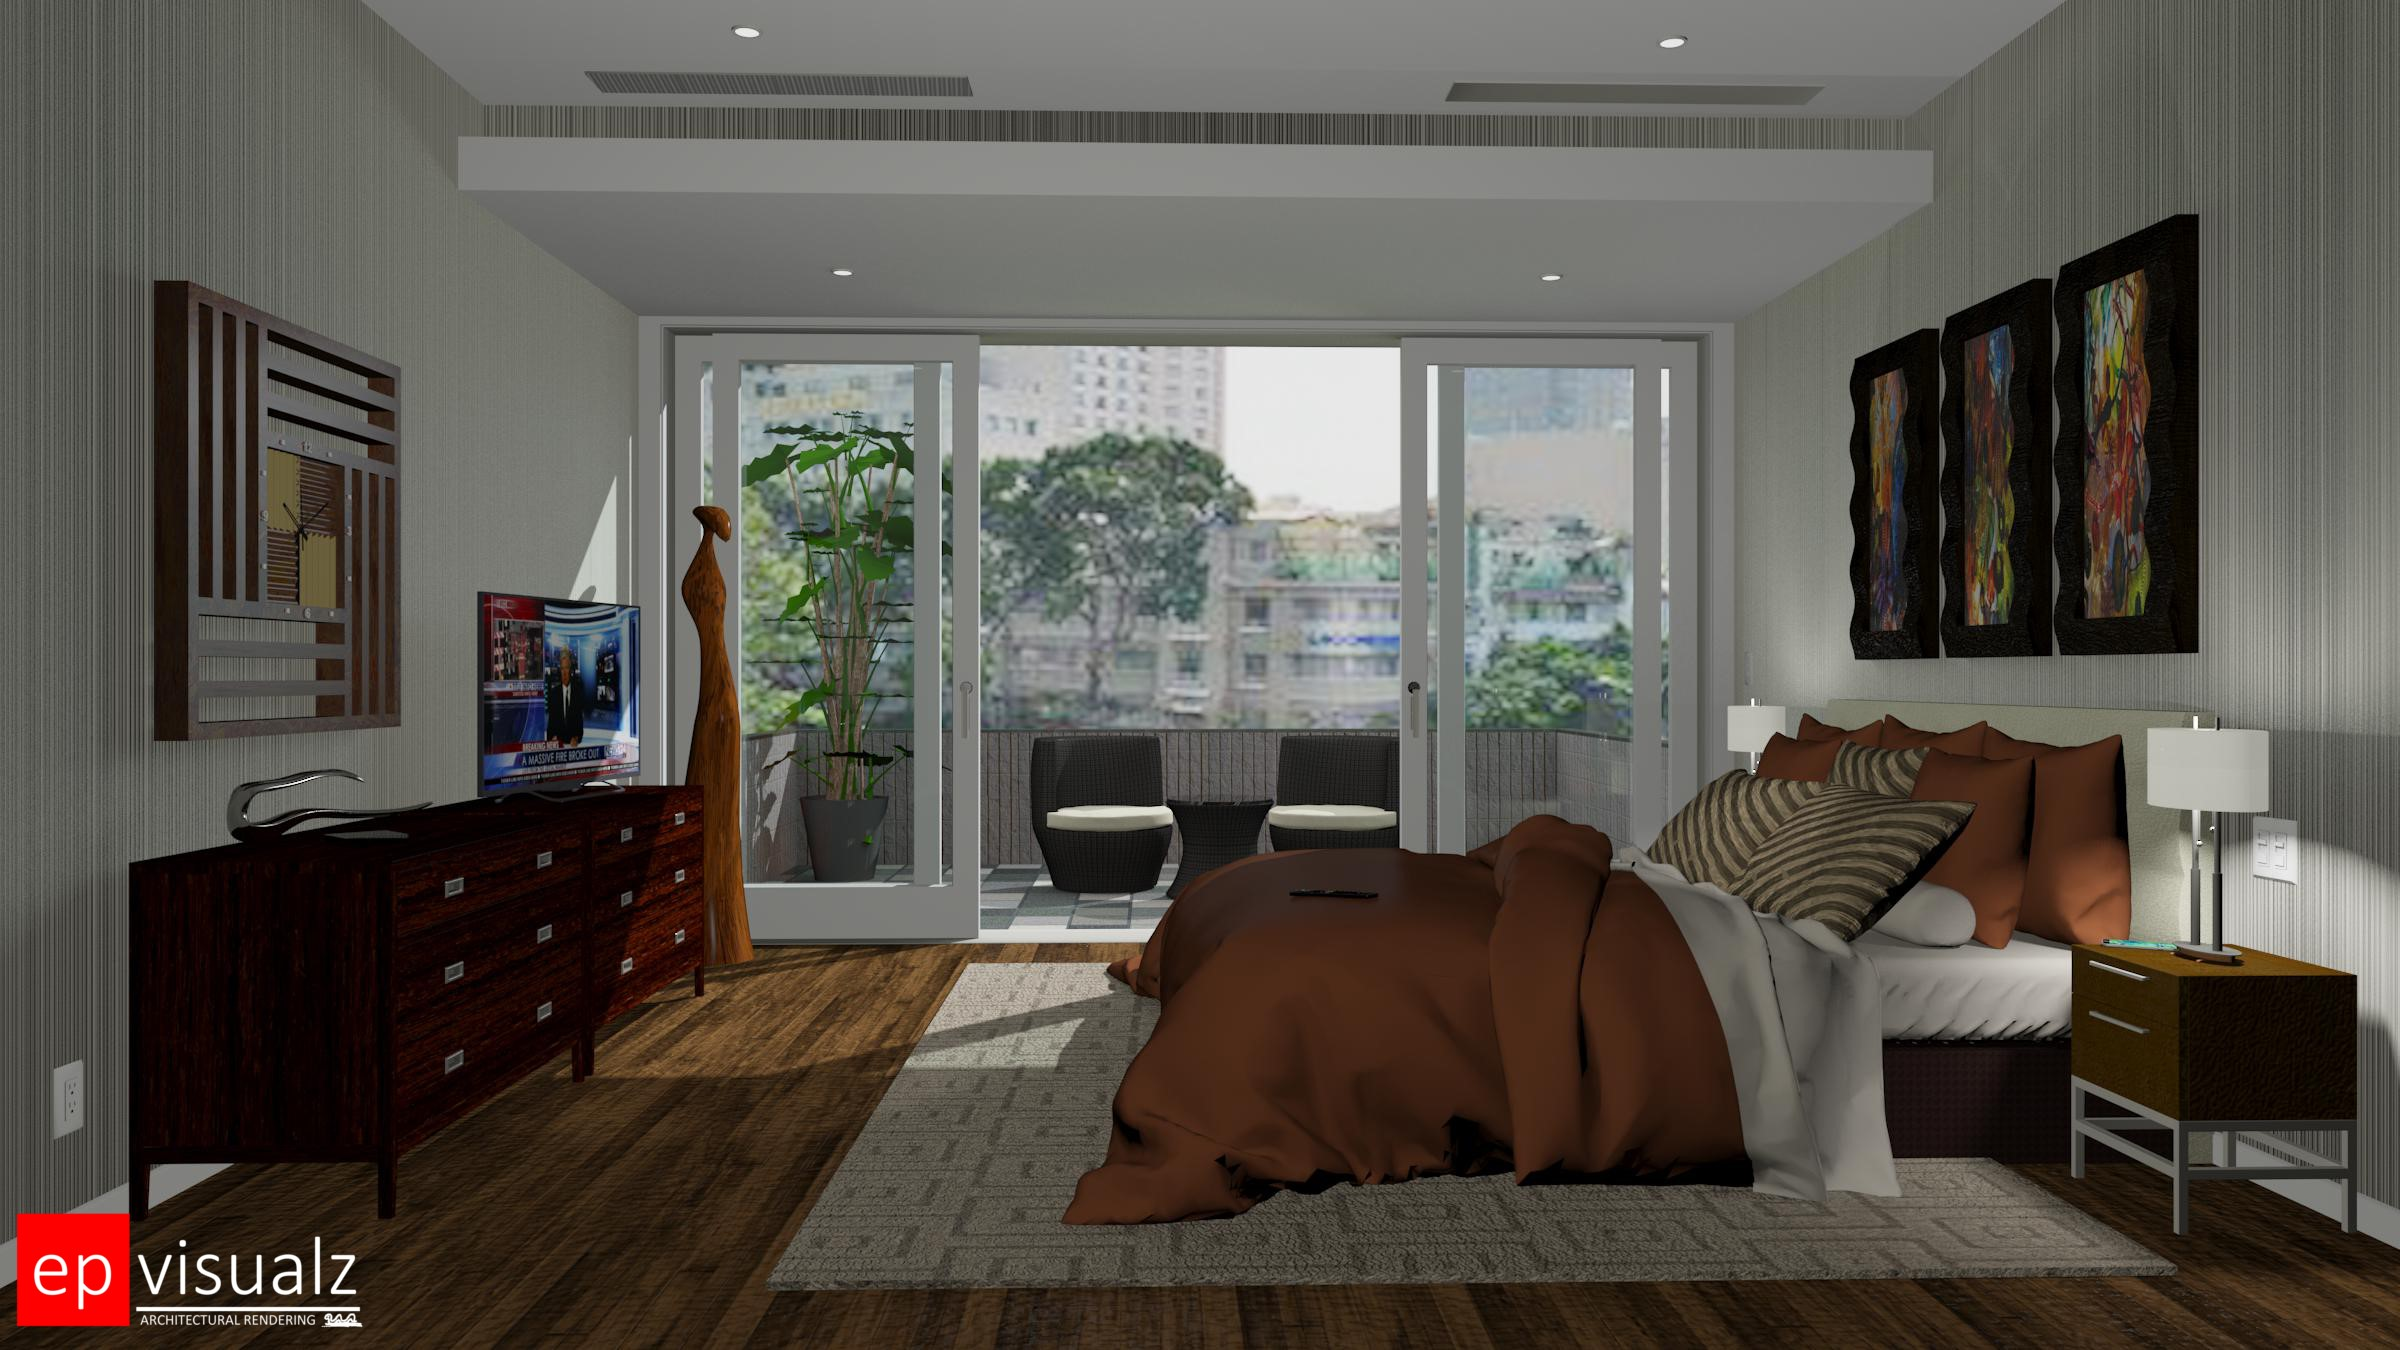 Architectural renderings service